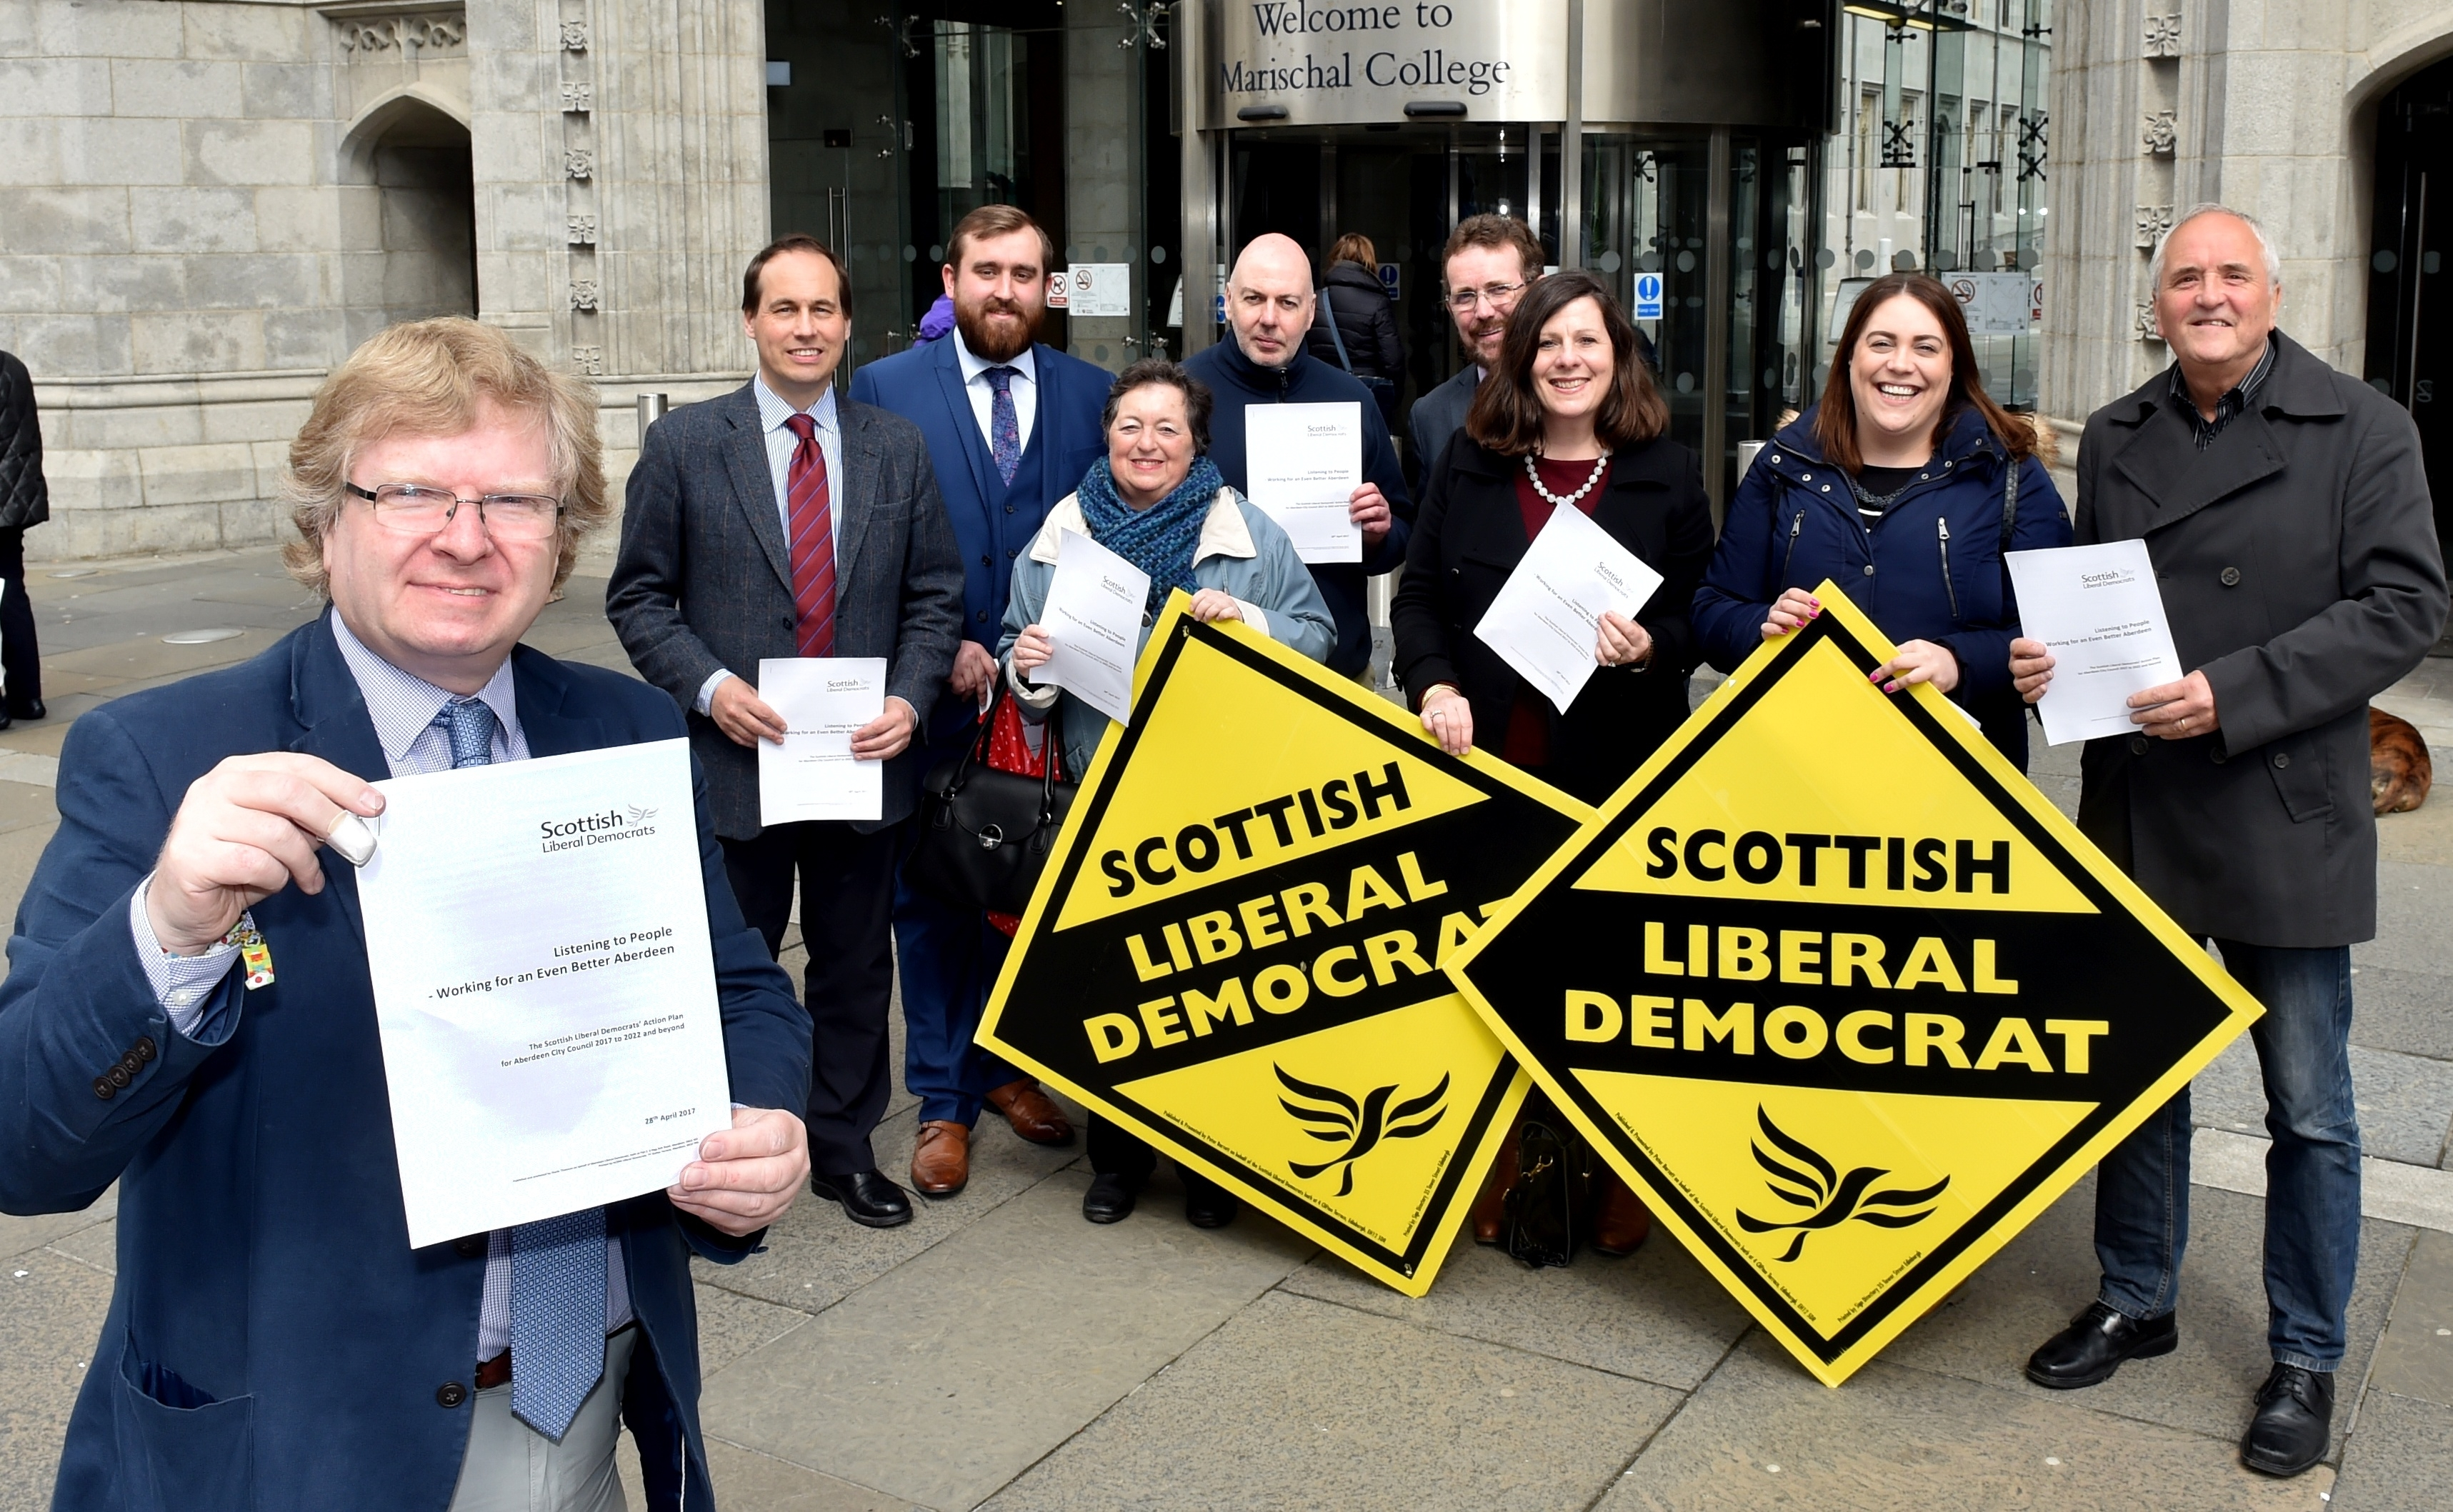 The Liberal Democrats held their manifesto launch outside Marischal College in Aberdeen. Leader Iain Yuill with (from left) Martin Greig, Cameron Finnie, Dorothy Pearce, Gregor McAbery, Steve Delanay, Jennifer Stewart, Jenny Wilson and Ken McLeod. Picture by Colin Rennie.